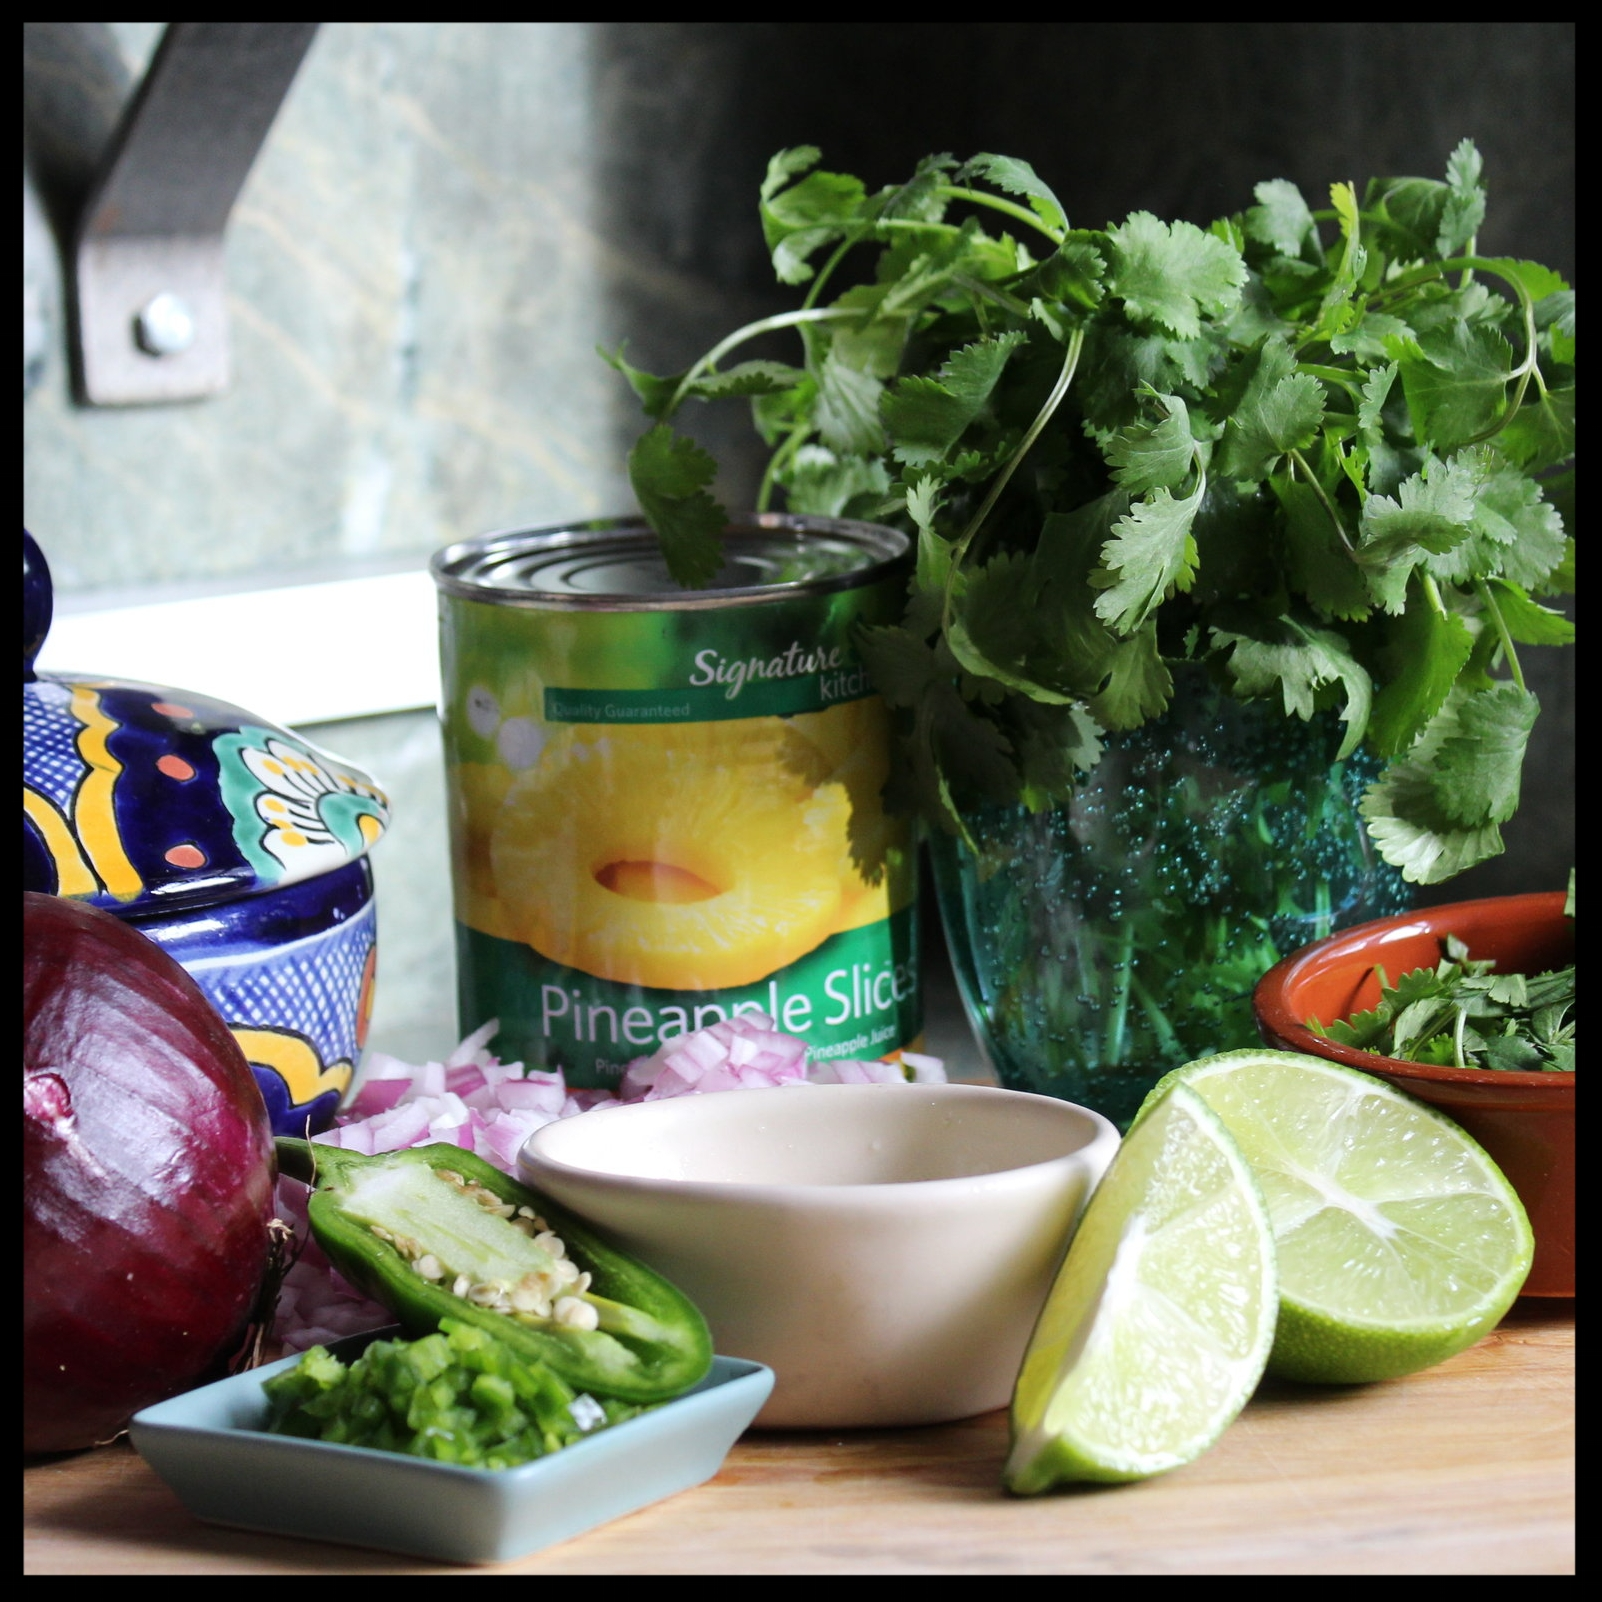 "WHAT YOU NEED:   - 1 can of pineapple in its own juice   - 1/2 jalapeno (about 3"" long), seeded and finely chopped (reserve the other half for later)  - 1 small red onion, diced finely  - 1 cup (or more if you like) chopped cilantro  - juice of 2 limes   - 1 tsp EACH ground cumin, dry oregano and chili powder  - 1/2 tsp EACH salt and ground black pepper"